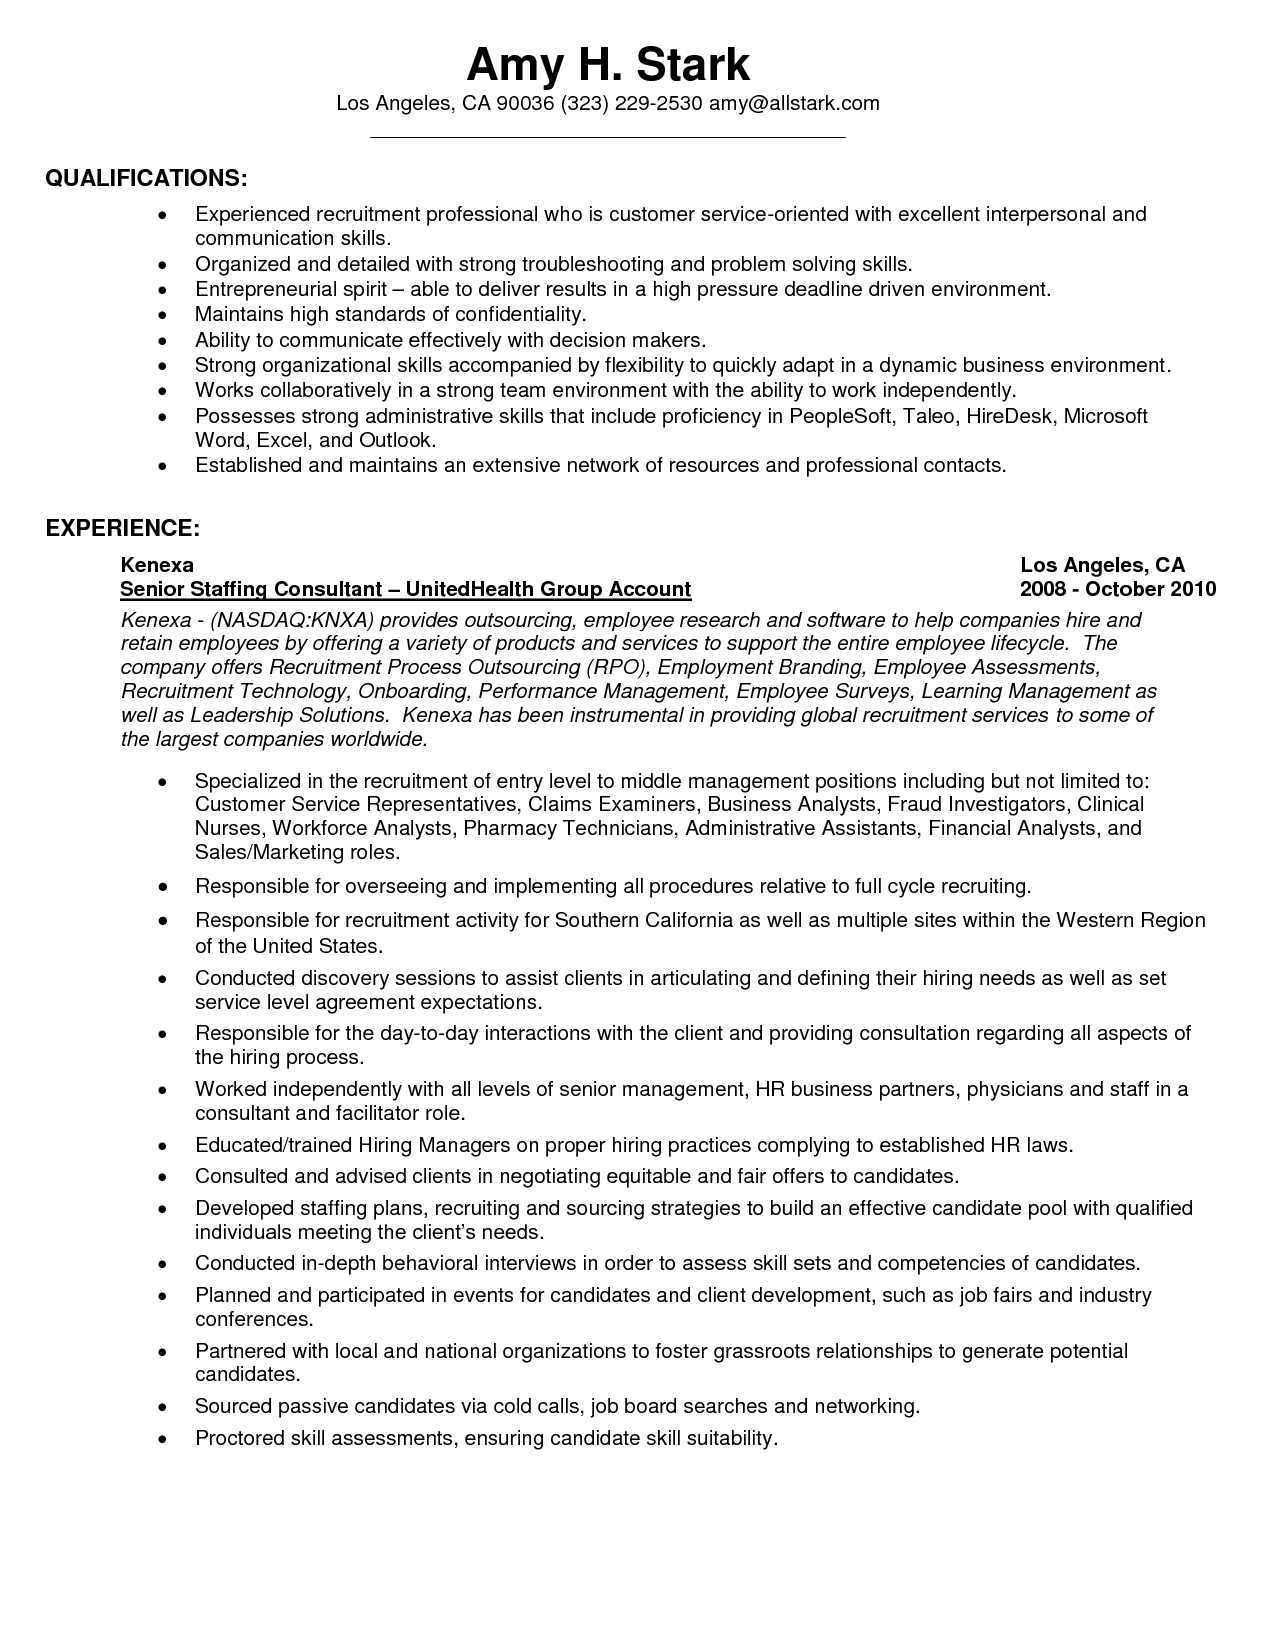 Resume Customer Service Skills Impressive Kfc Jobs Food And Restaurant Resume Sample Samplebusinessresume 2018